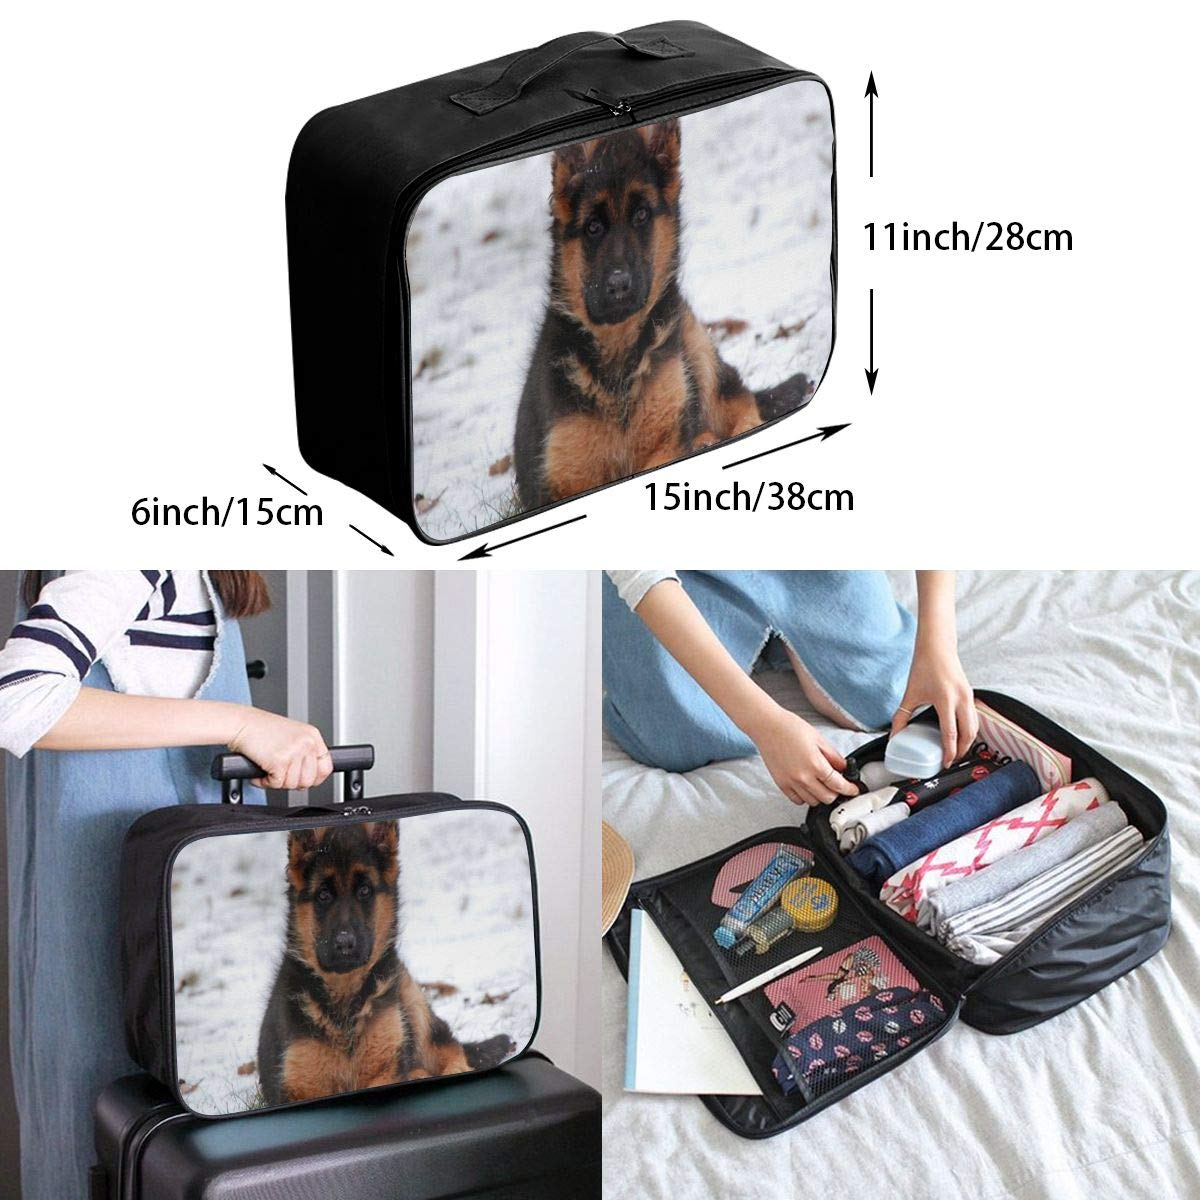 Lightweight Large Capacity Portable Luggage Bag Cute Santa Claus Travel Waterproof Foldable Storage Carry Tote Bag